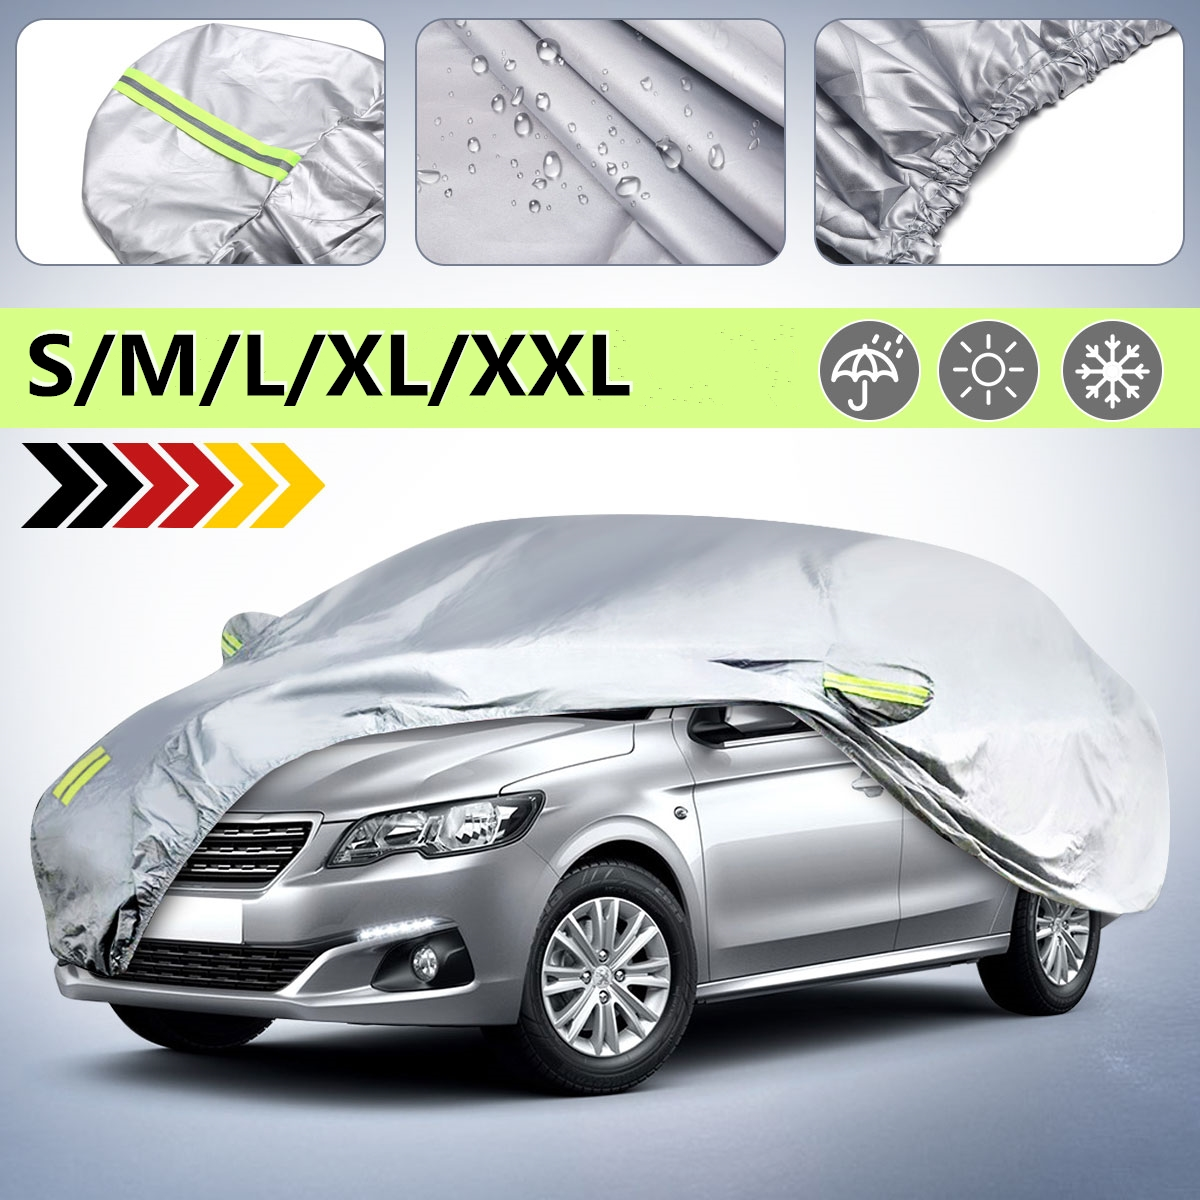 Universal For Sedan Car Covers Size S M L XL XXL Indoor Outdoor Full Auto Cover Waterproof Sun UV Snow Protection Silver Cover